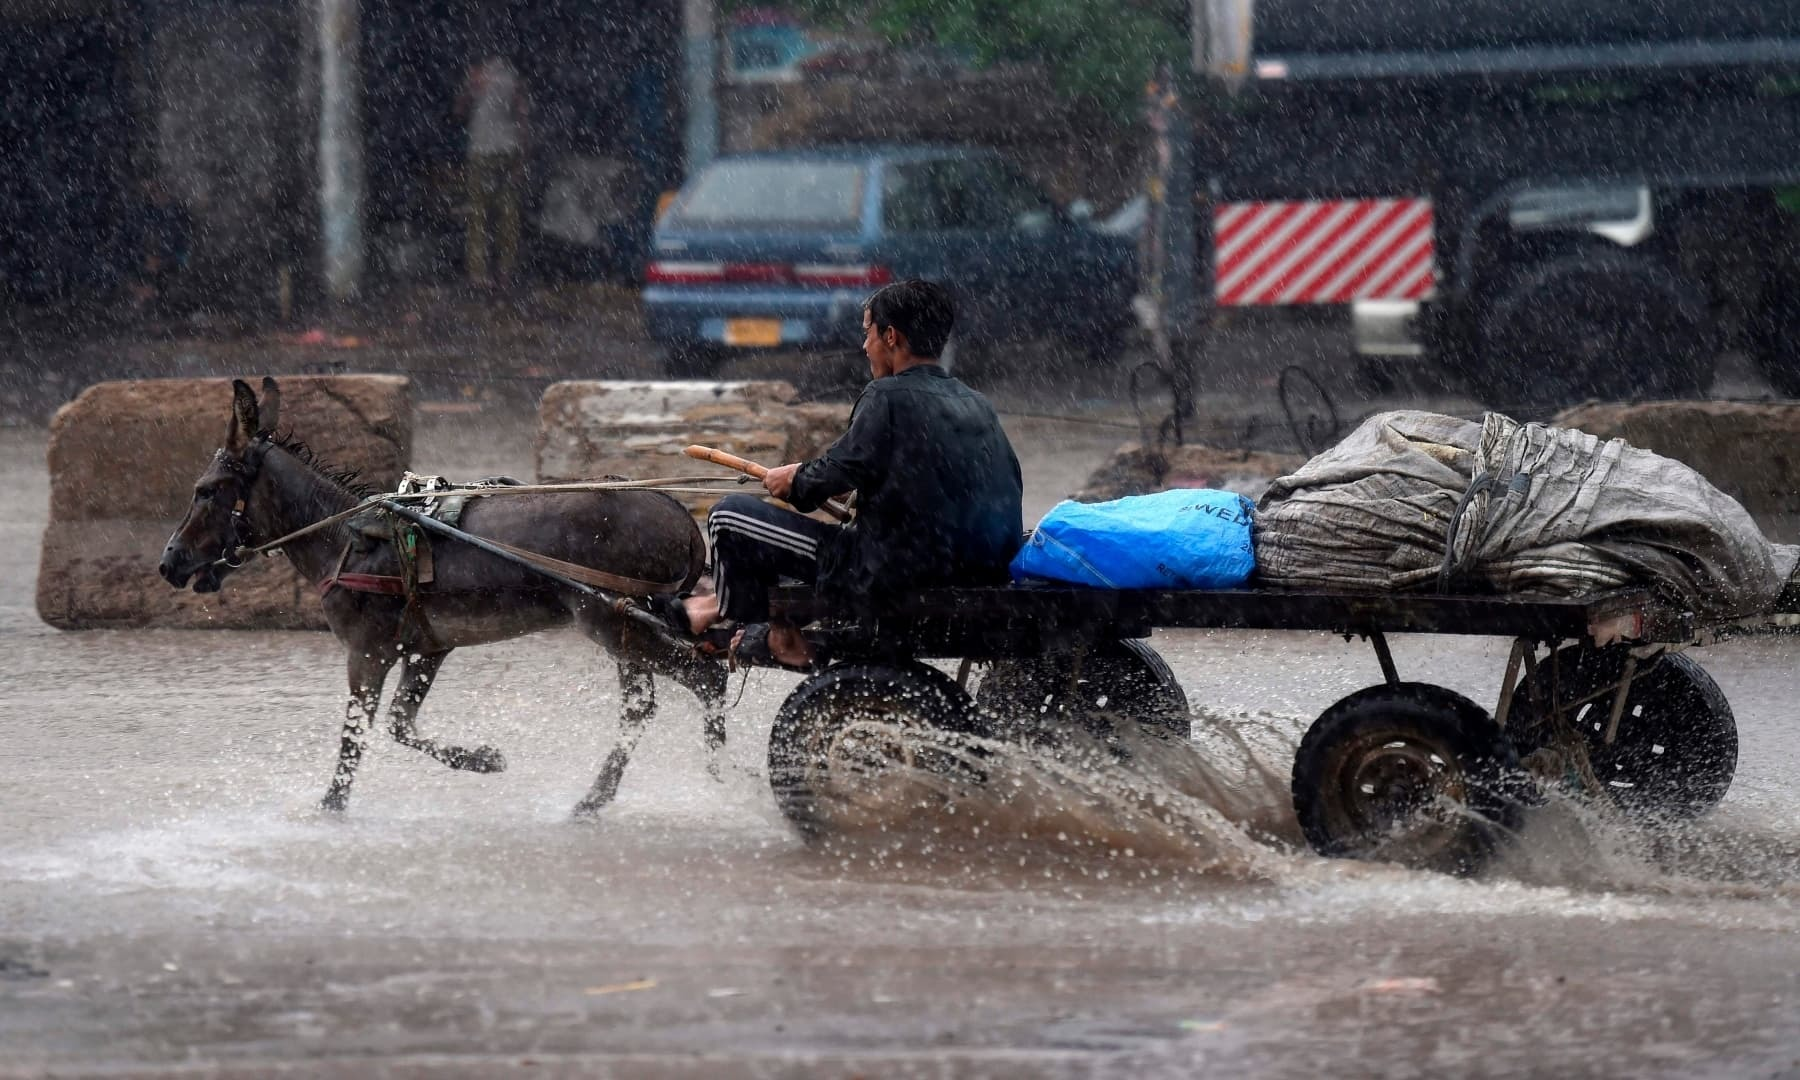 Record torrential rain pours misery on Karachi